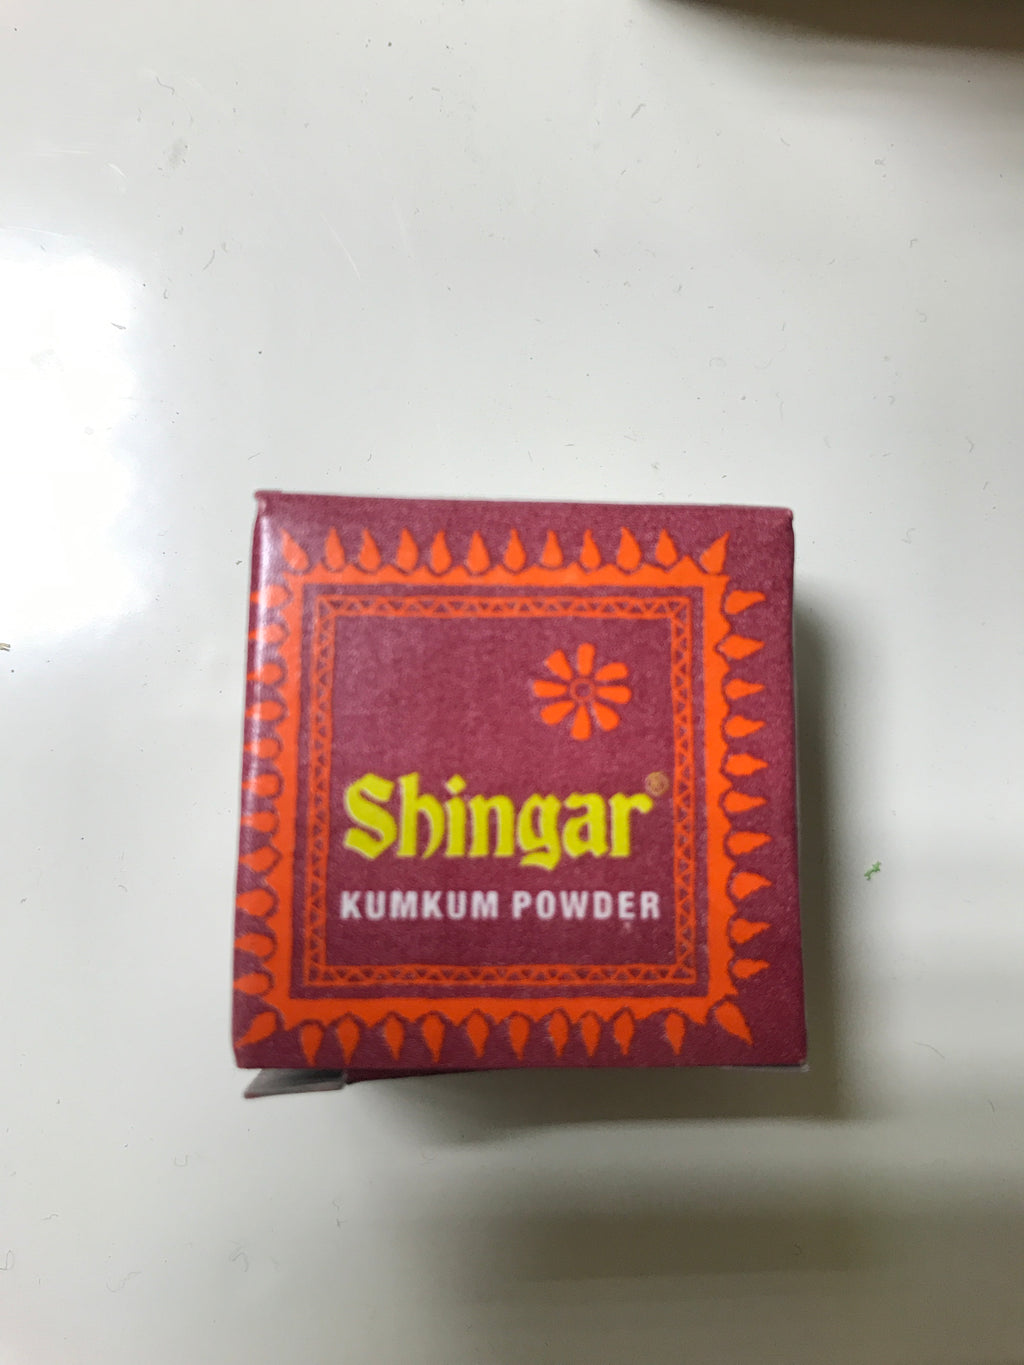 Shingar Kumkum Powder 2.5g